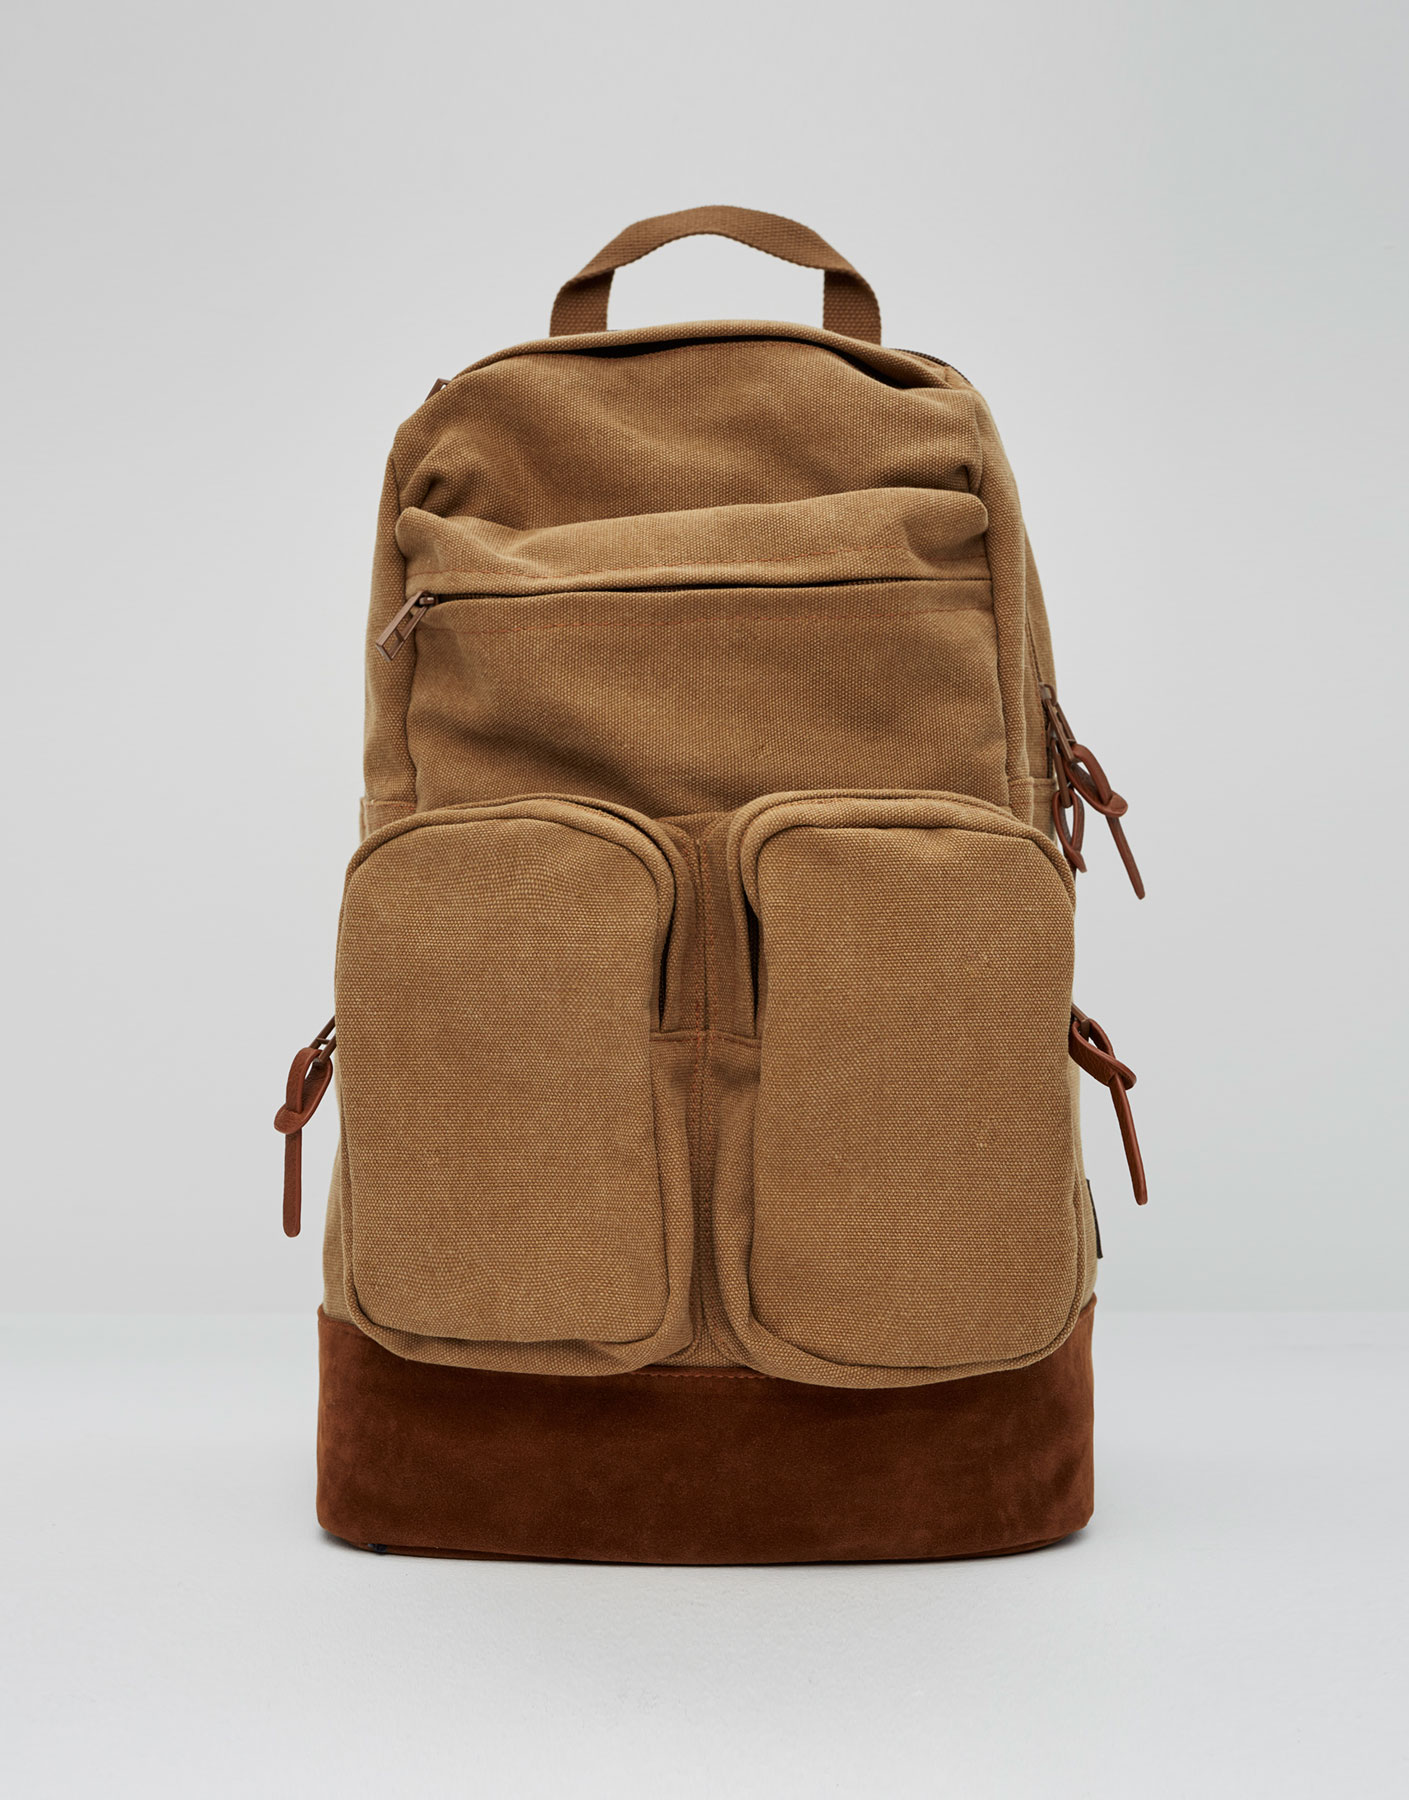 Military-style backpack with exterior pockets